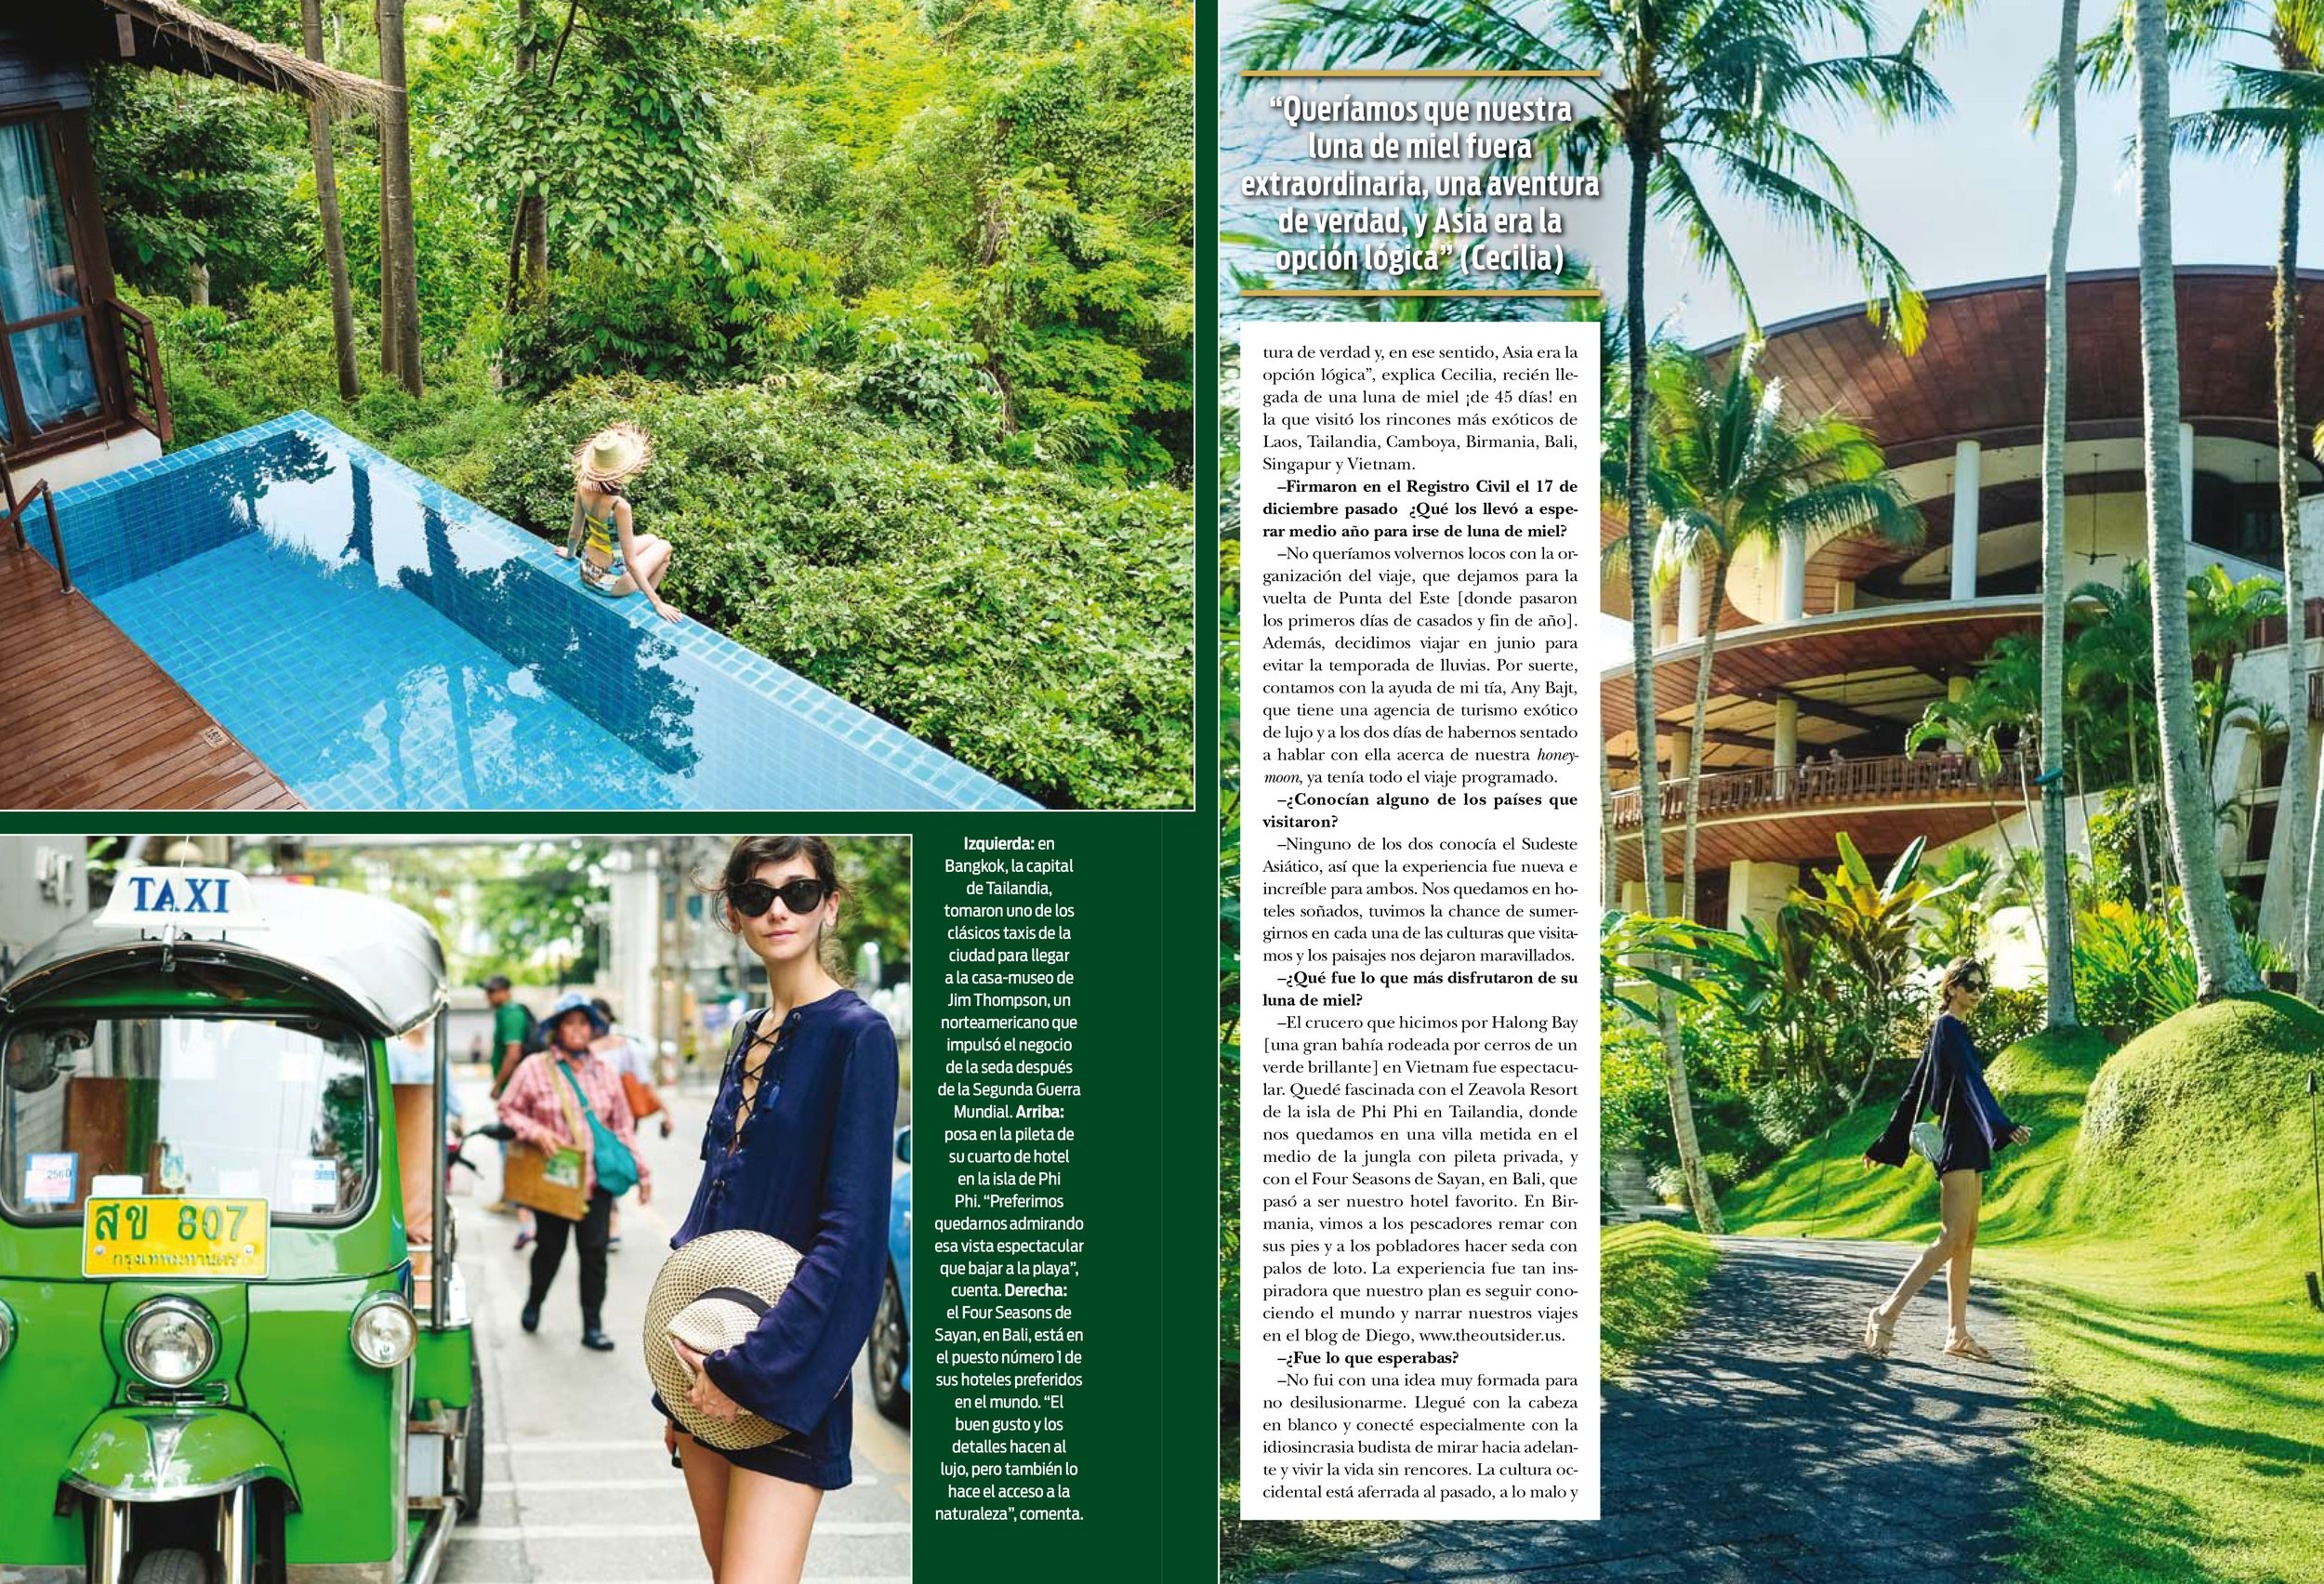 Our Honeymoon featured in ¡HOLA! Argentina - In collaboration with Four Seasons Bali and Small Luxury Hotel's Angkor Village Resort in Siam Reap, The Luang Say Residence in Luang Prabang and Zeavola Phi Phi Resort in Phi Phi. /Click here to read the full Interview